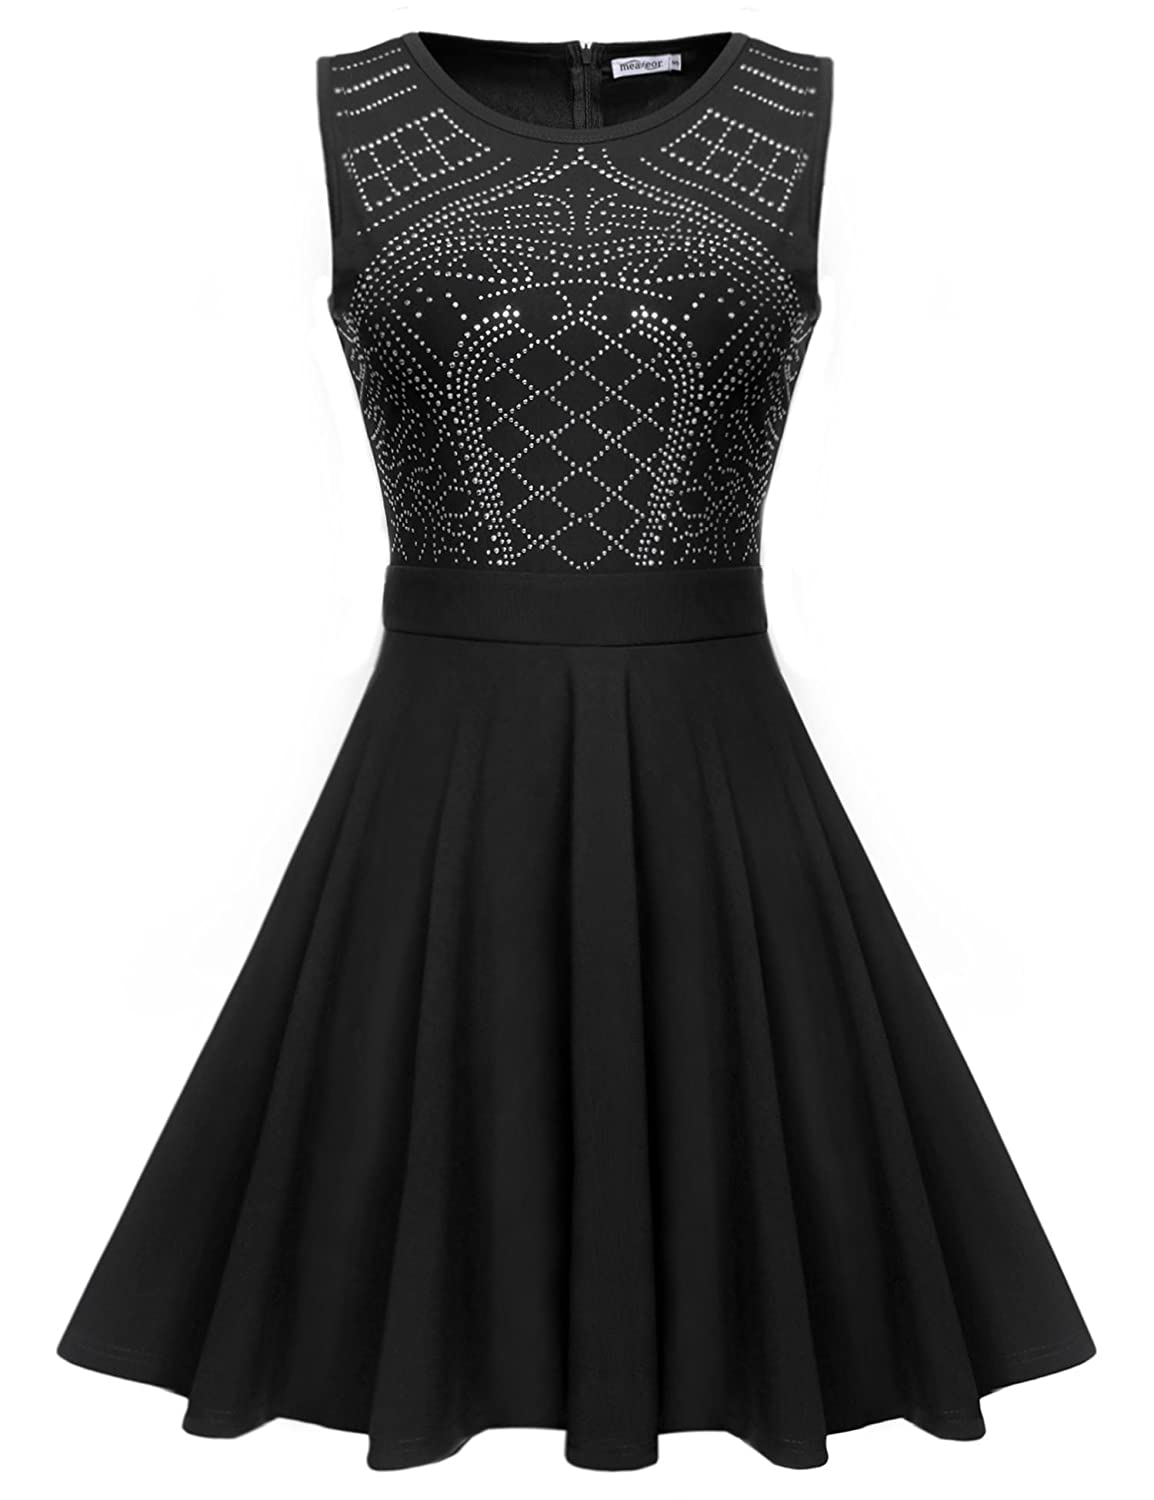 Meaneor Women's Sleeveless Rhinestone Embellished Fit and Flare Swing Dress